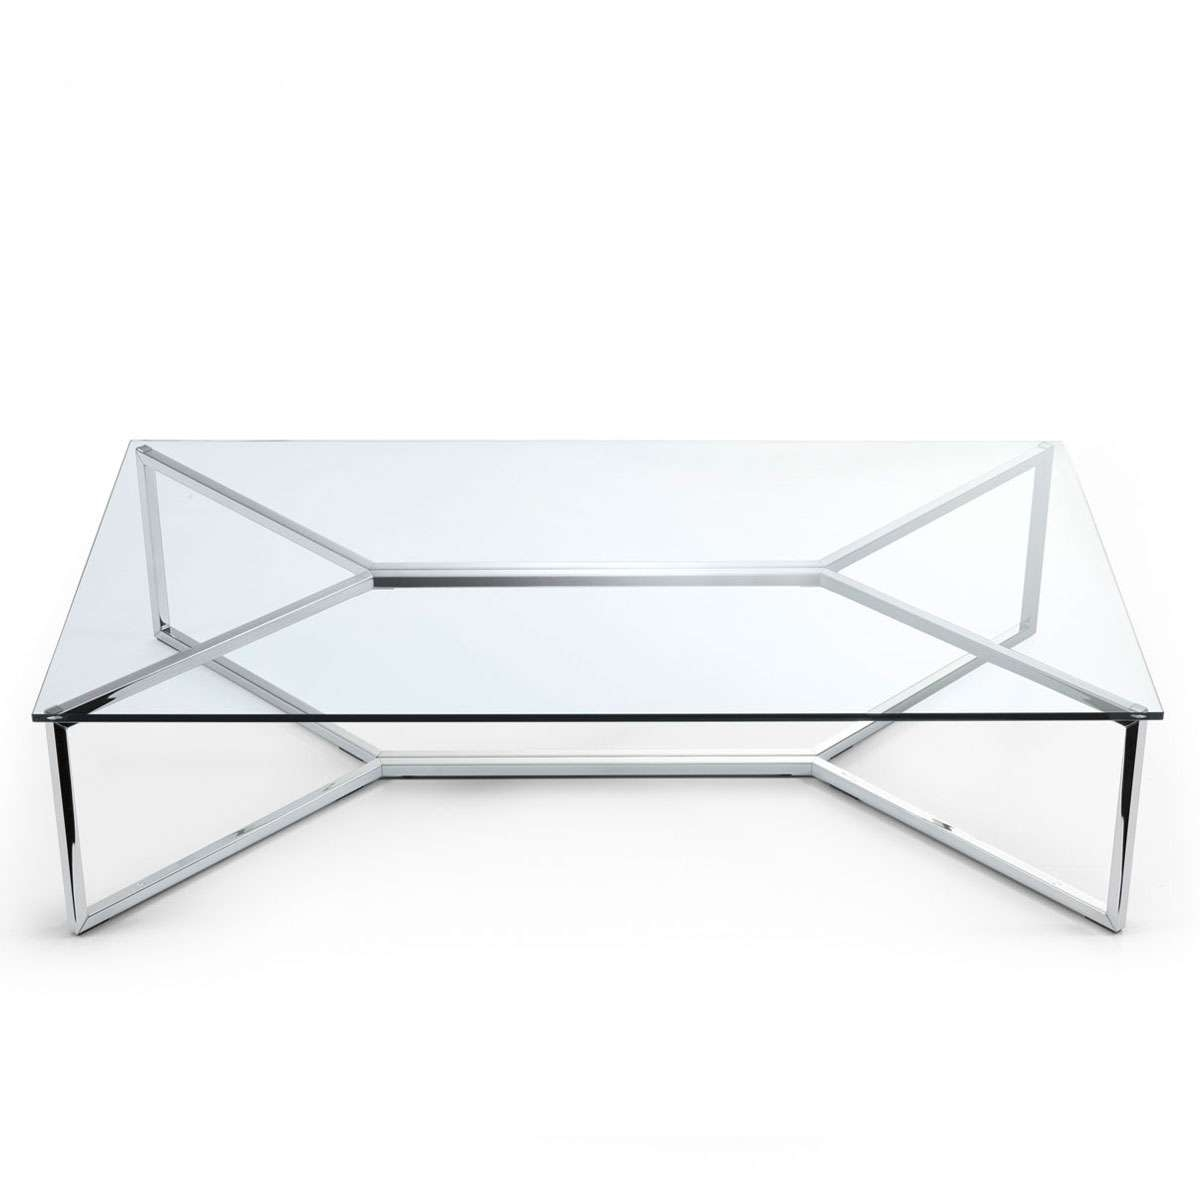 Marvellous Glass And Metal Coffee Table Ideas – Glass And Metal For 2018 Glass Metal Coffee Tables (View 16 of 20)